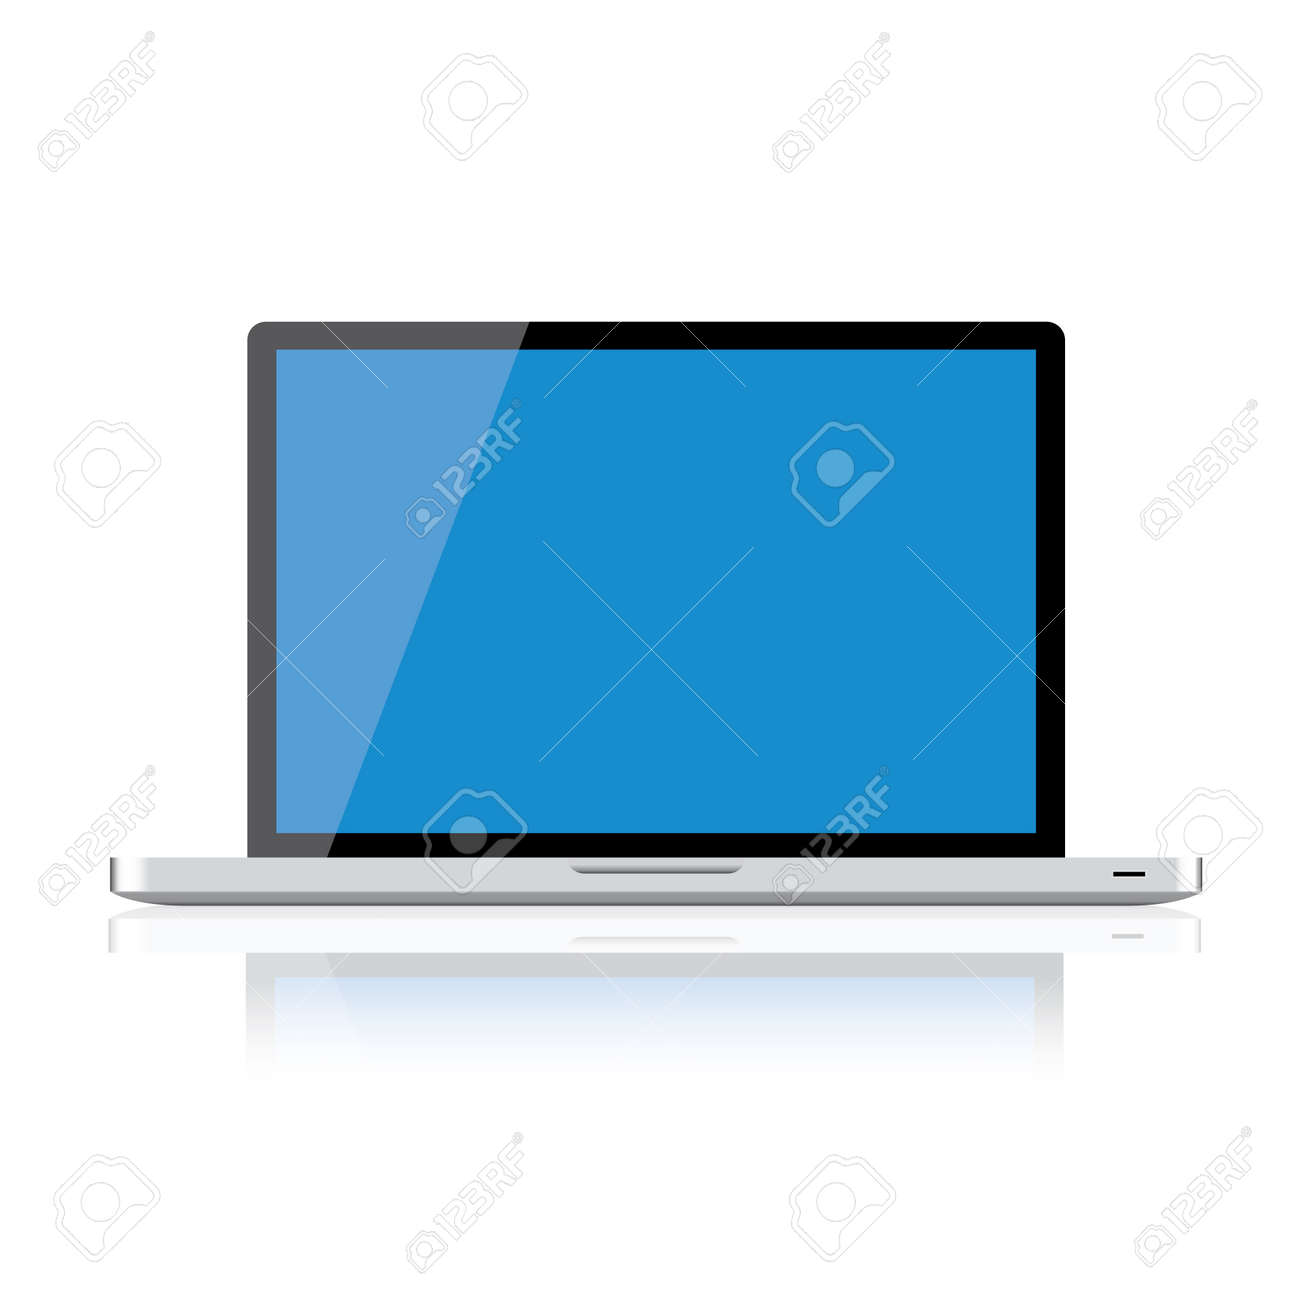 Laptop isolated on white background, clipping path included Stock Vector - 16857768